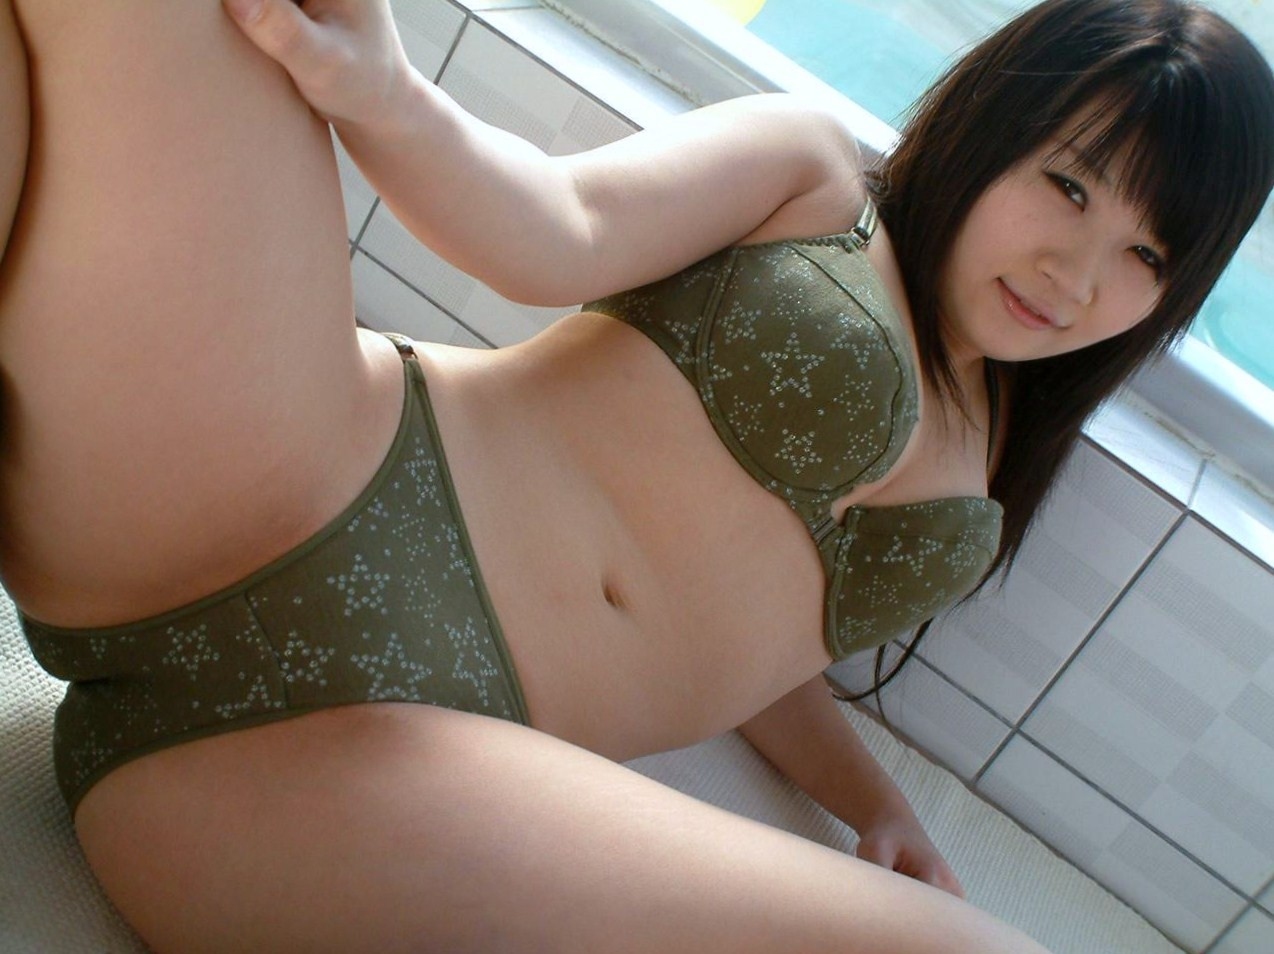 Hot Girl Japanese 18 Jav Girl Nude Xxx-2171